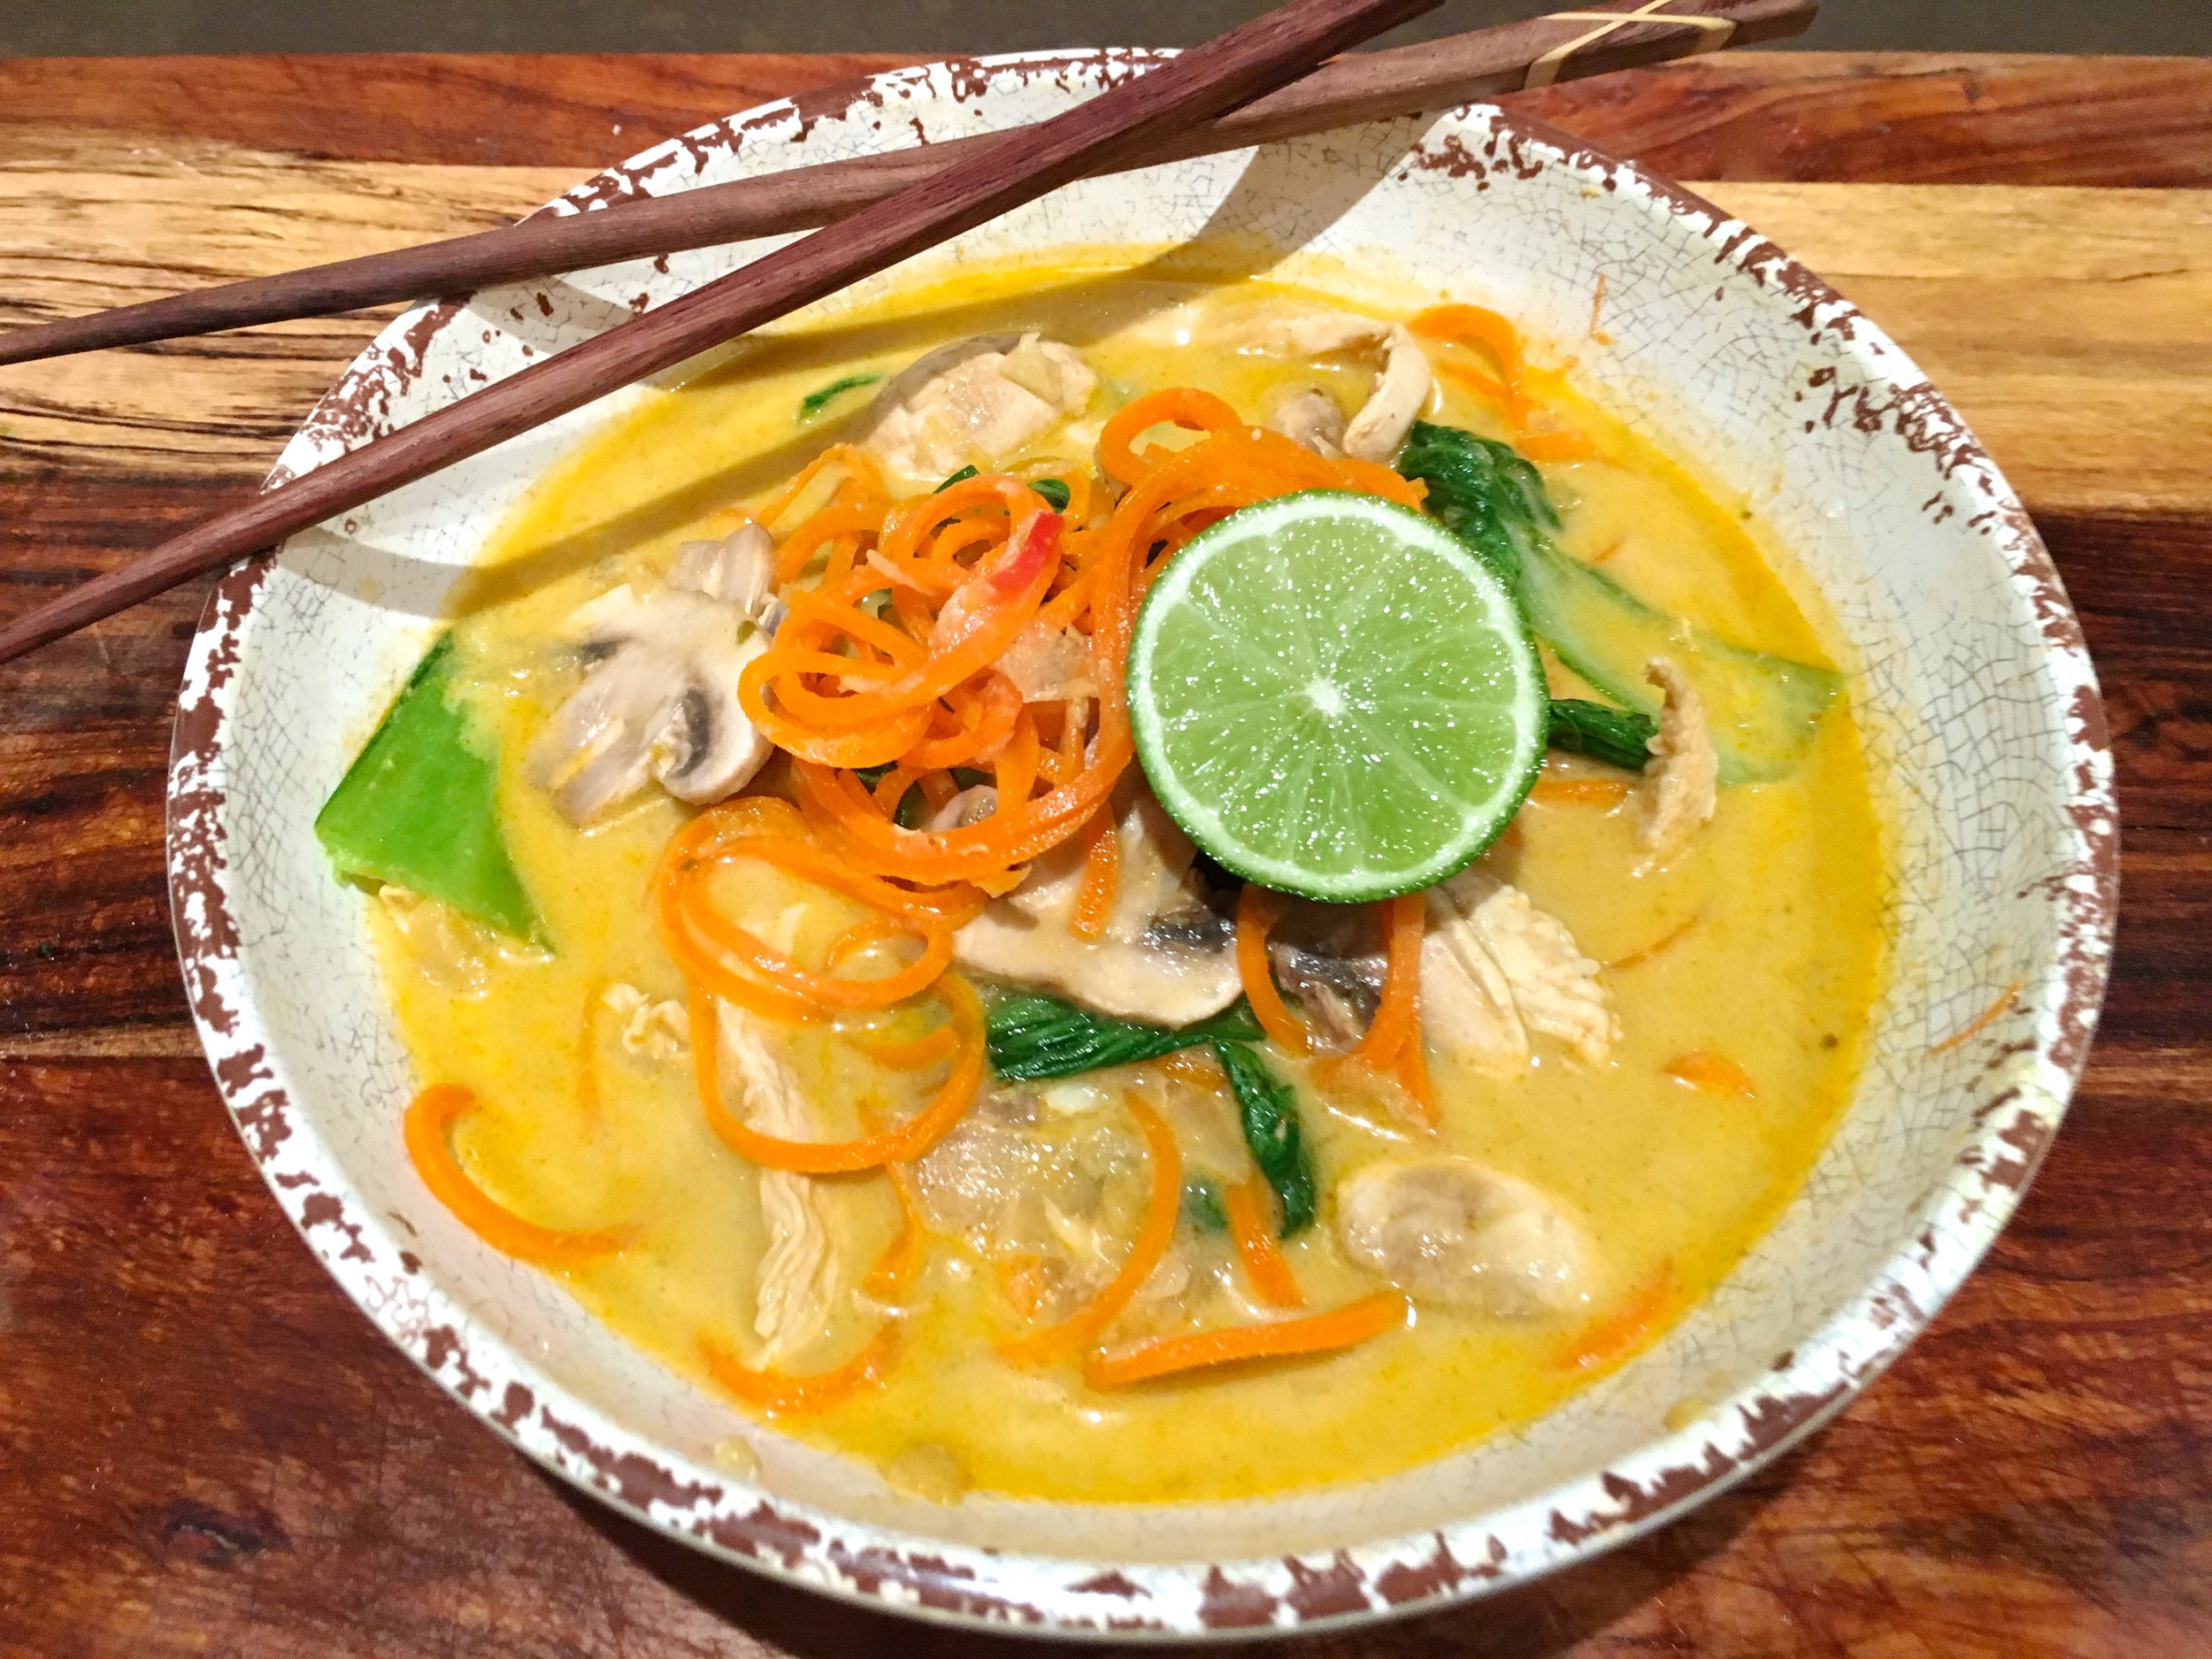 Healthy vegan Laksa Recipe with Carrot 'Noodles'